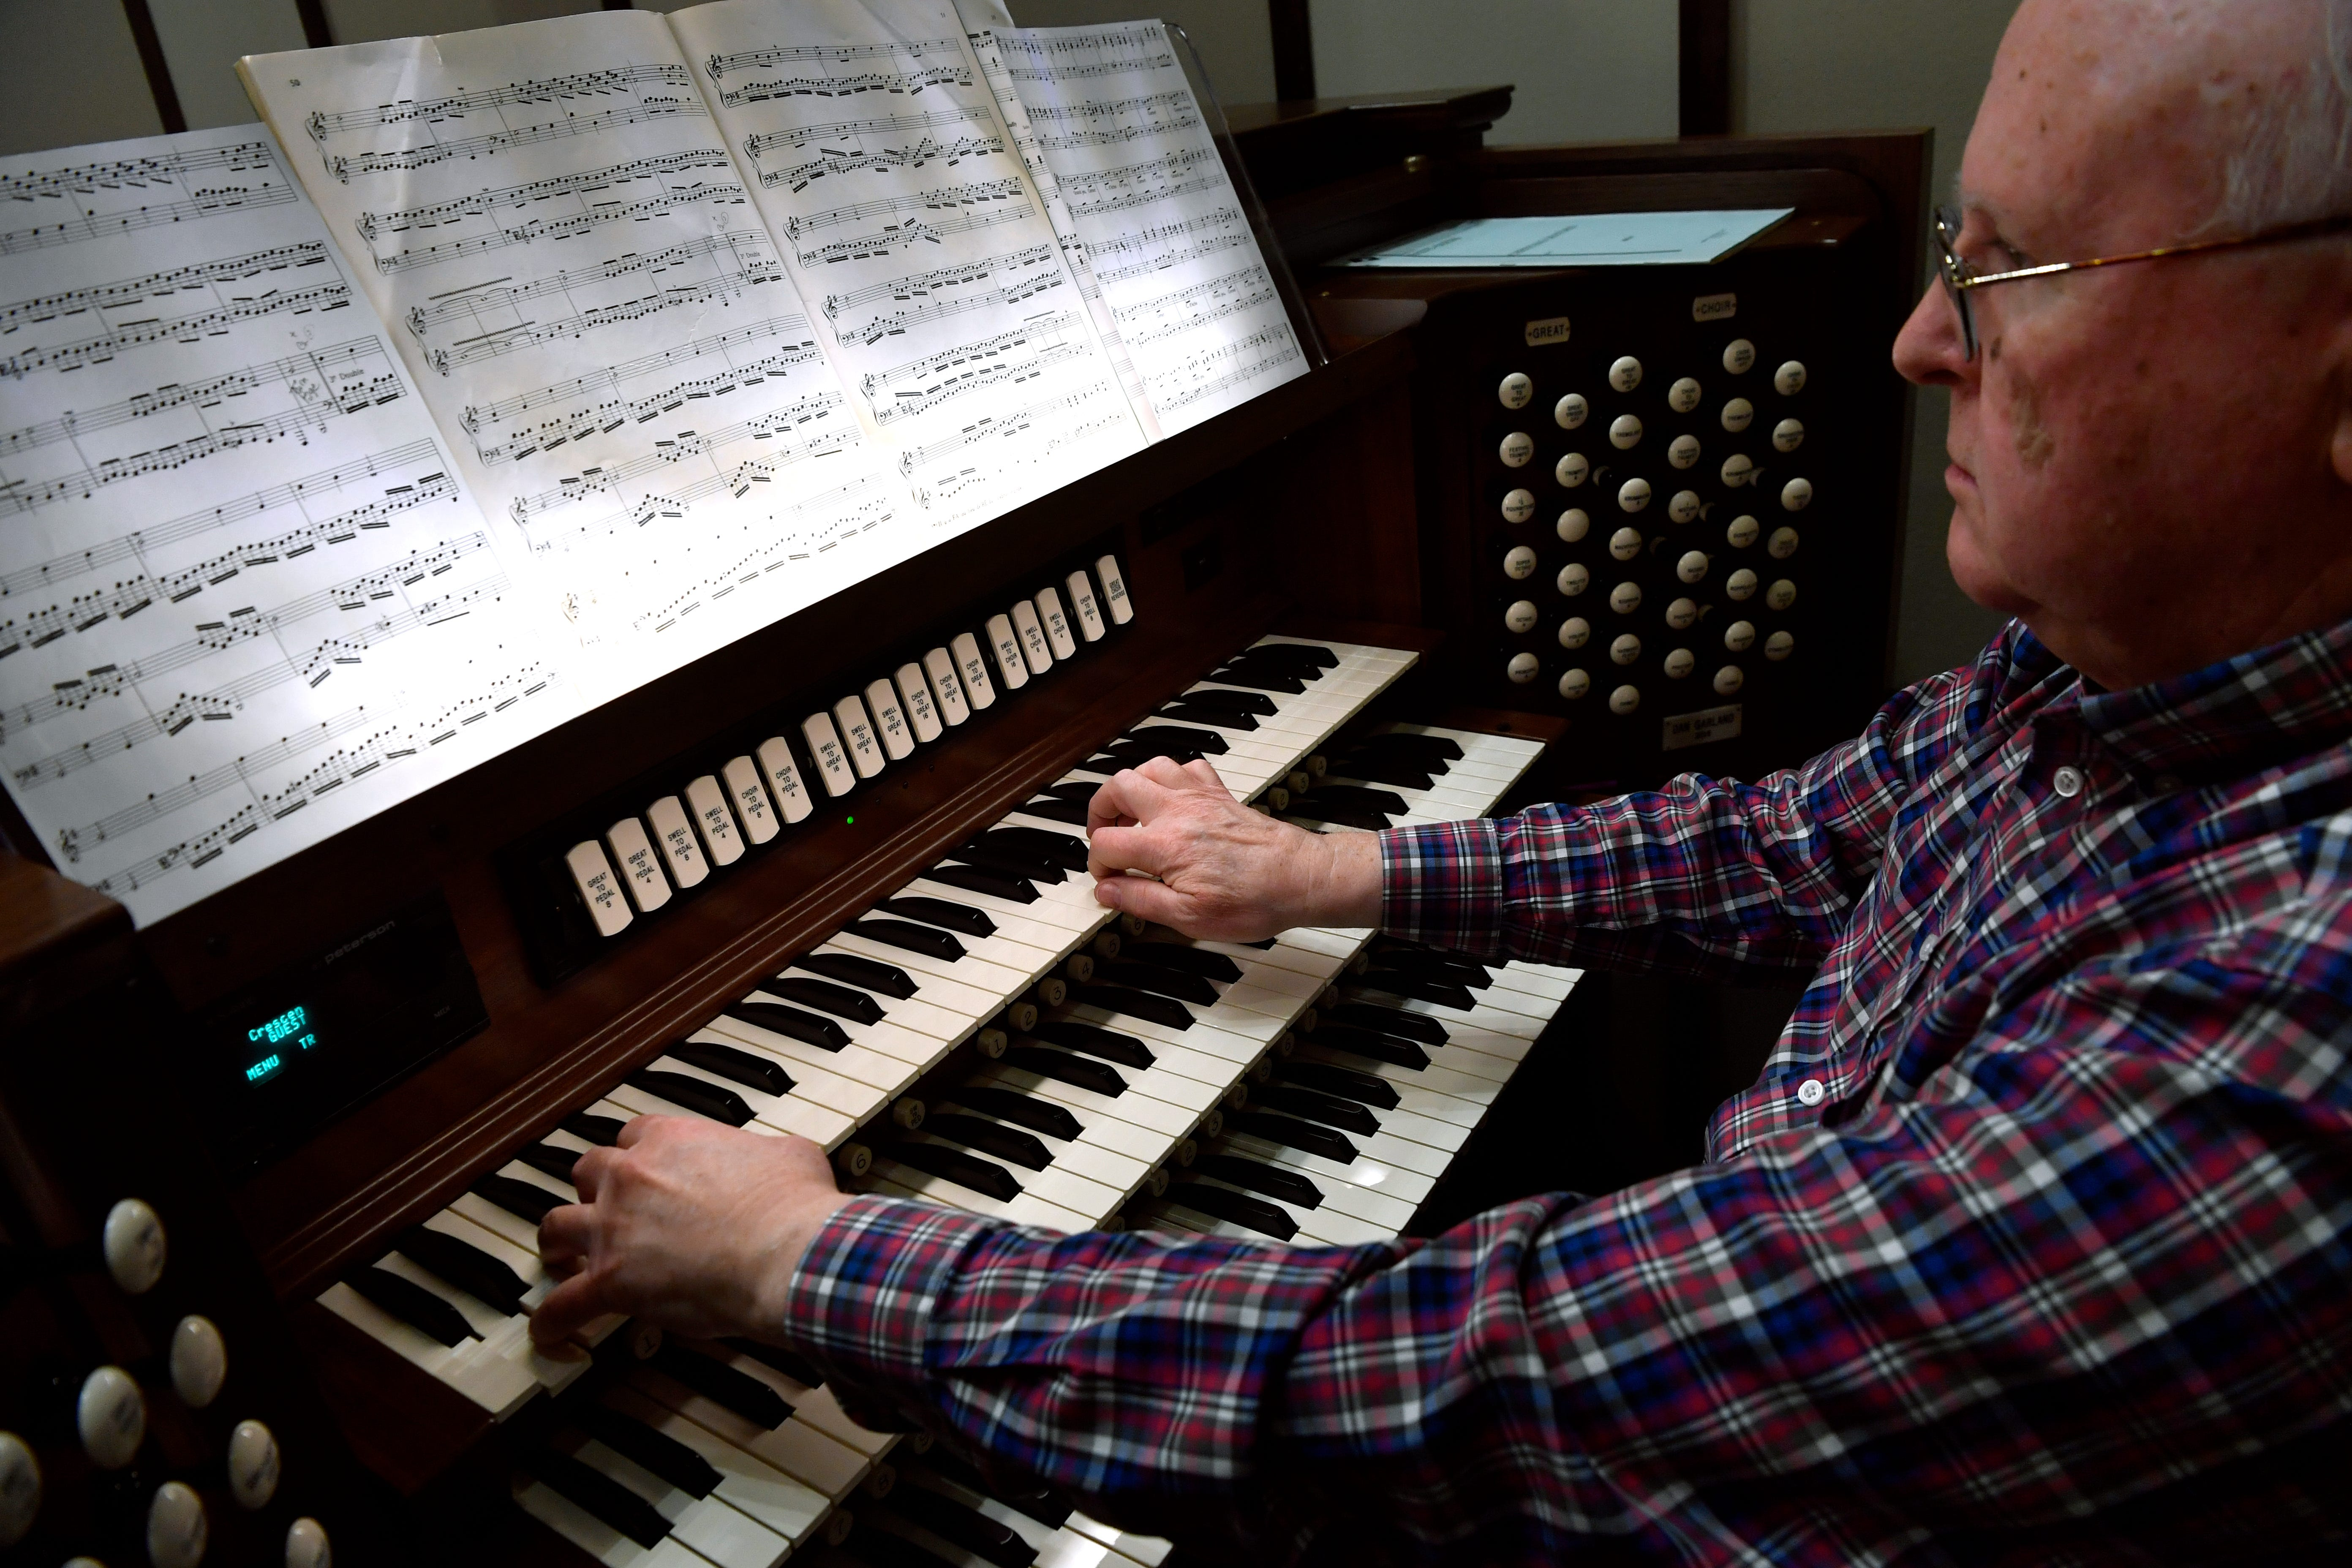 Larry Wolz rehearses on the new organ at First Central Presbyterian Church on Nov. 29. The church sanctuary just completed a major renovation, which included the $800,000 organ, paid for by a donor.